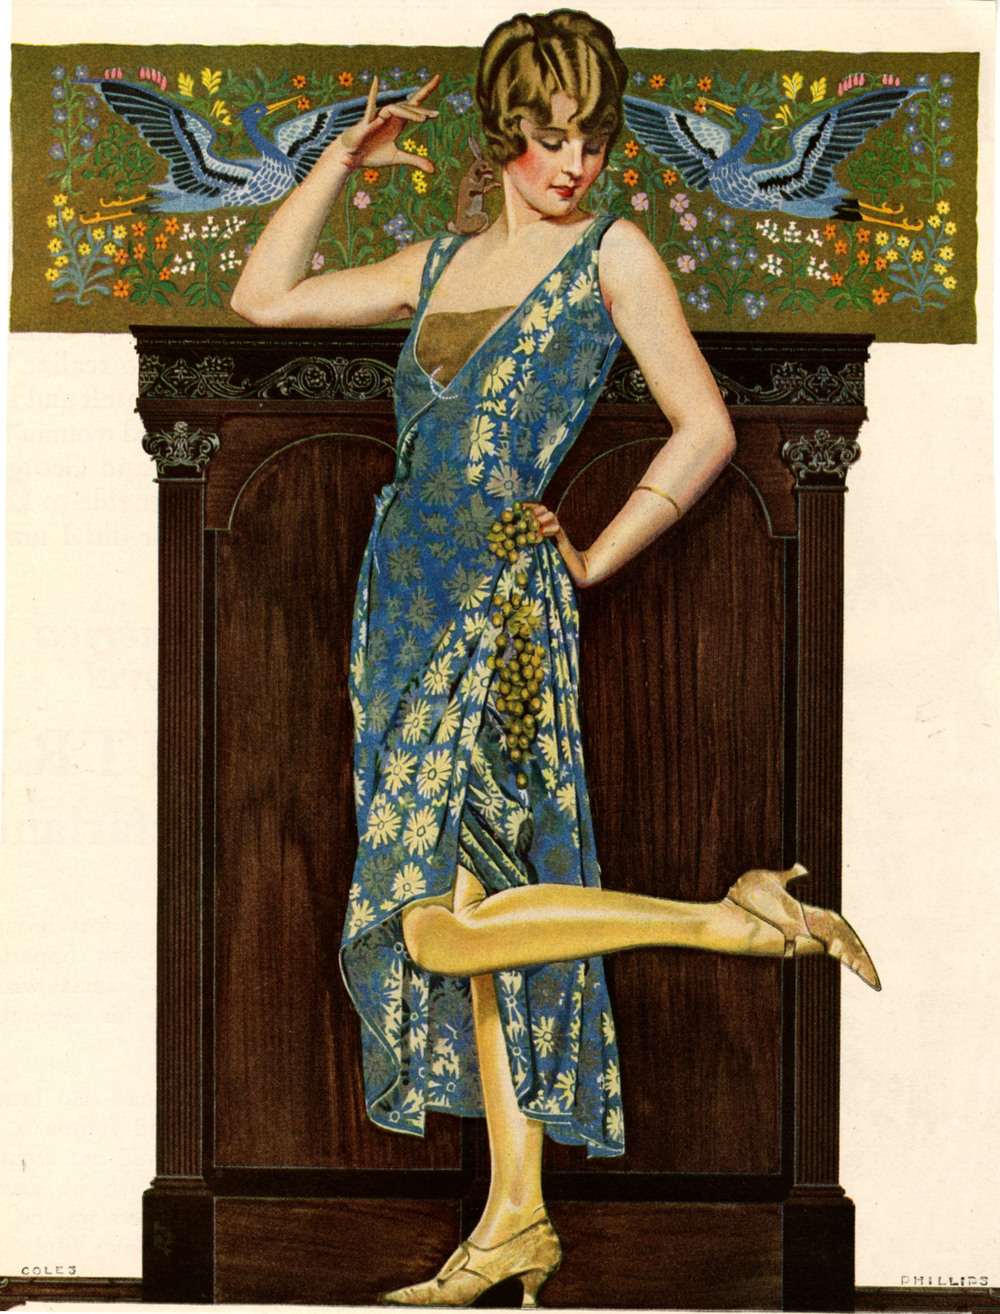 Coles Phillips, Magazine advertisement for Holeproof Hosiery, 1923.